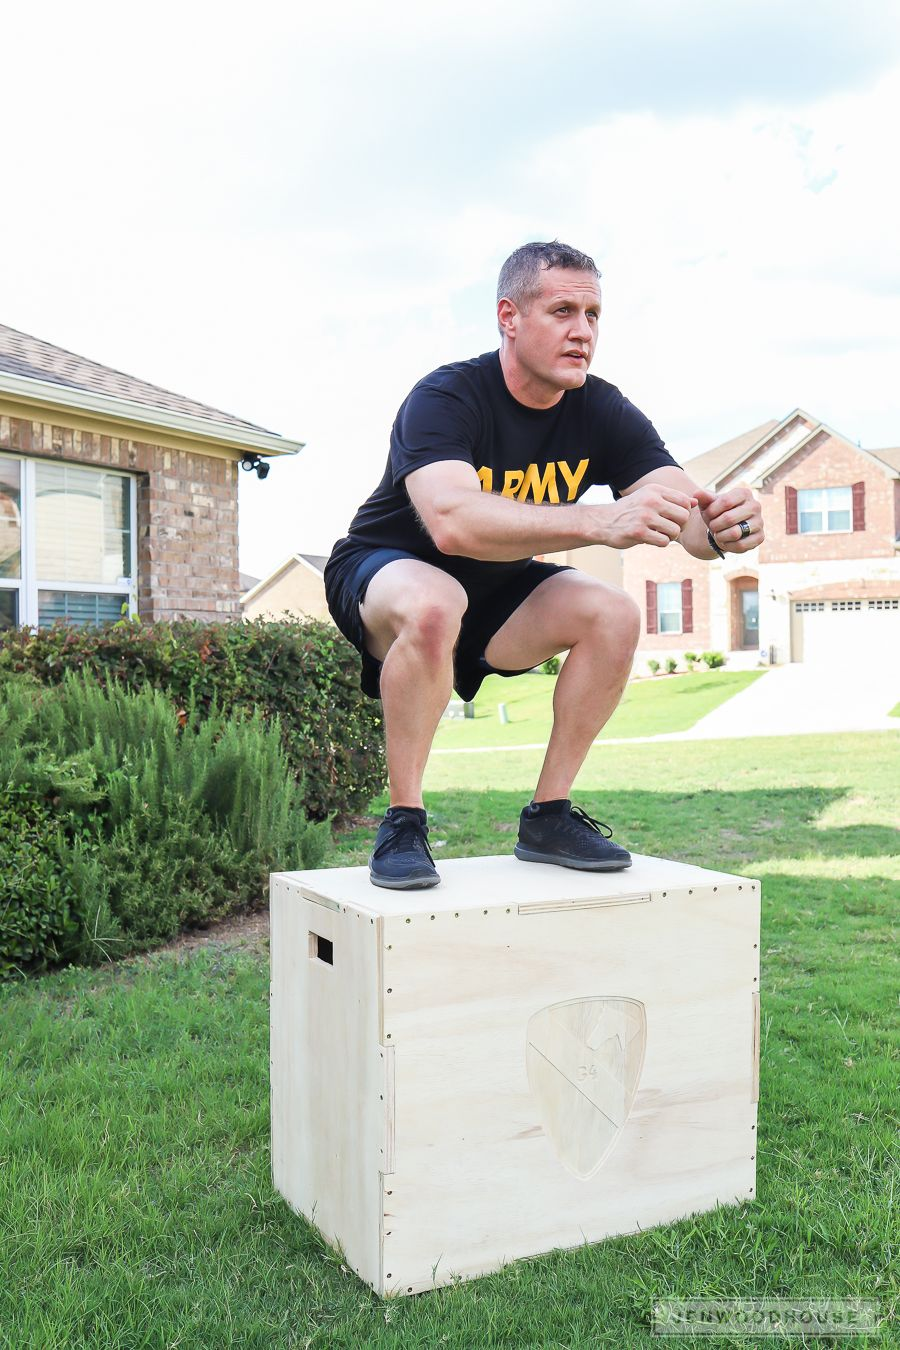 Build A Diy 3 In 1 Plyometric Box For Box Jump Exercises Do It